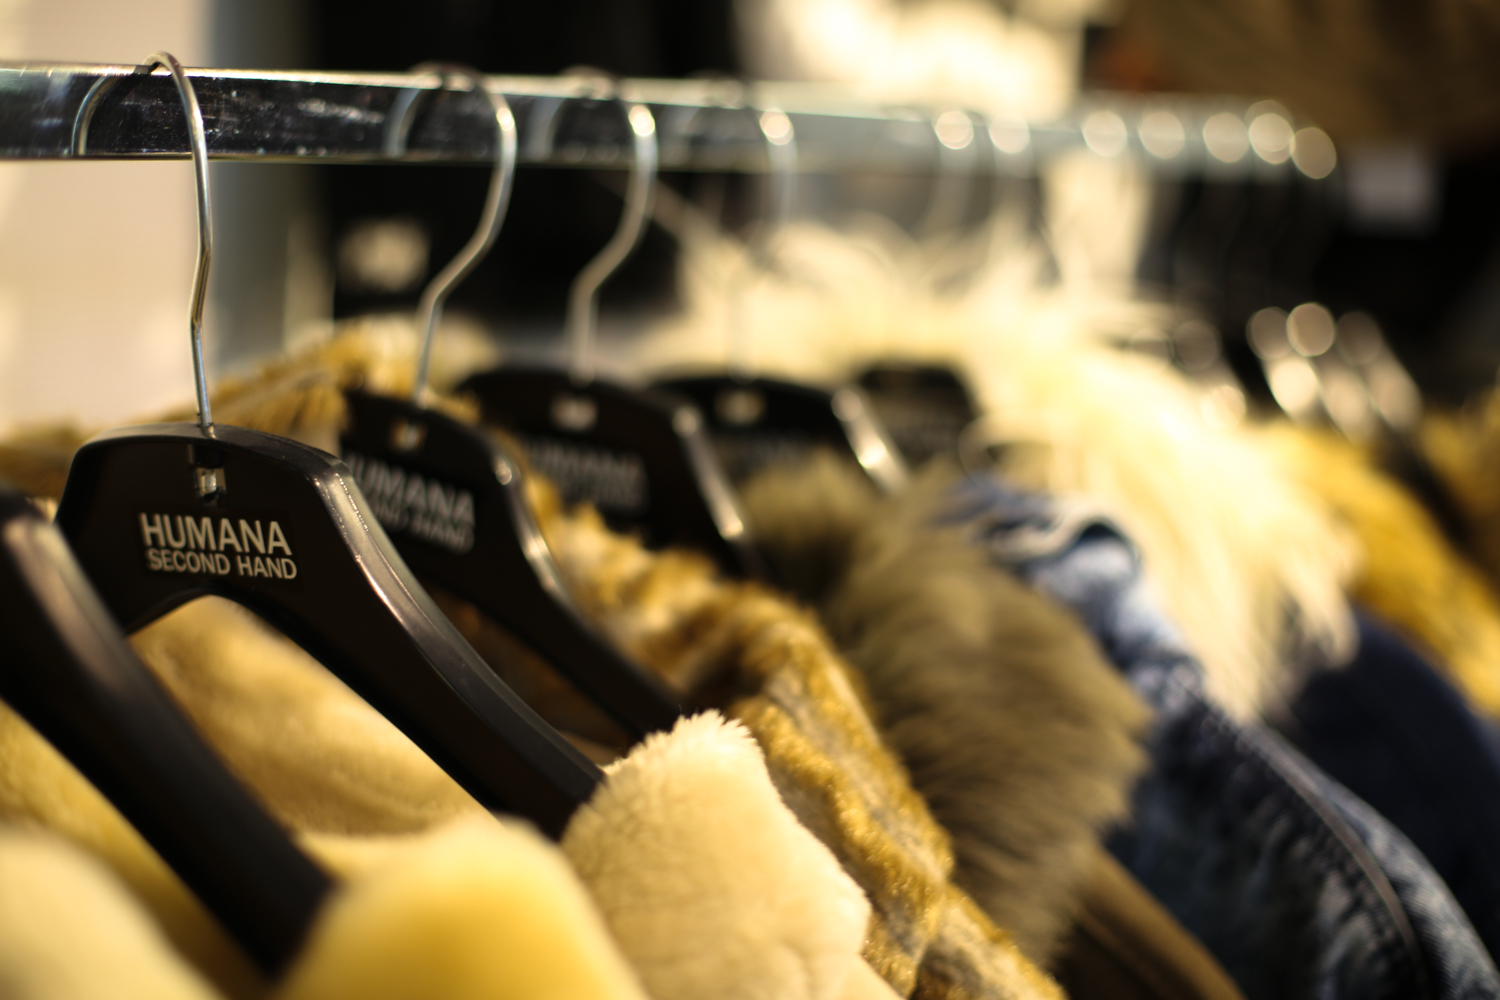 Humana Second Hand, Vintage Clothing Store, Stockholm